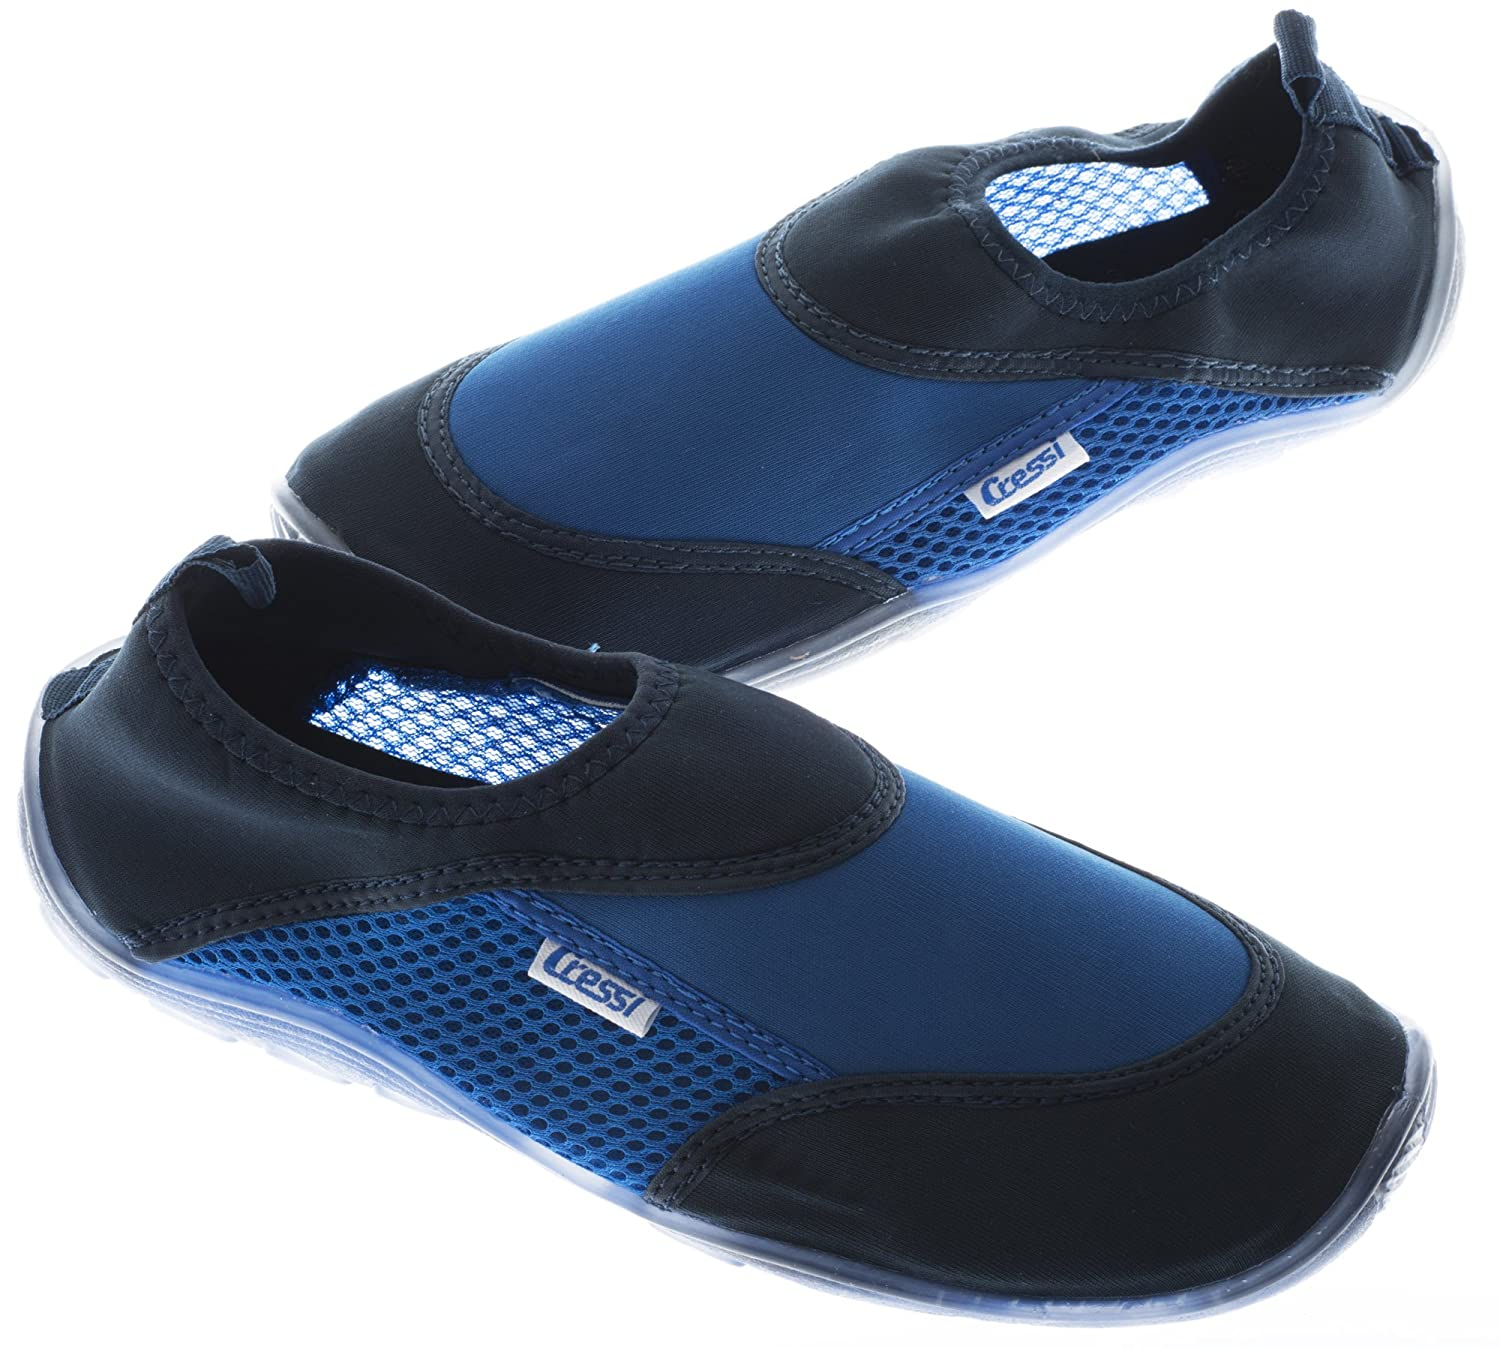 ce75bdf7b4 Cressi Aqua Shoes - Wet Shoes for Adults - Neoprene Water Shoes - Beach  Shoes  Amazon.co.uk  Shoes   Bags